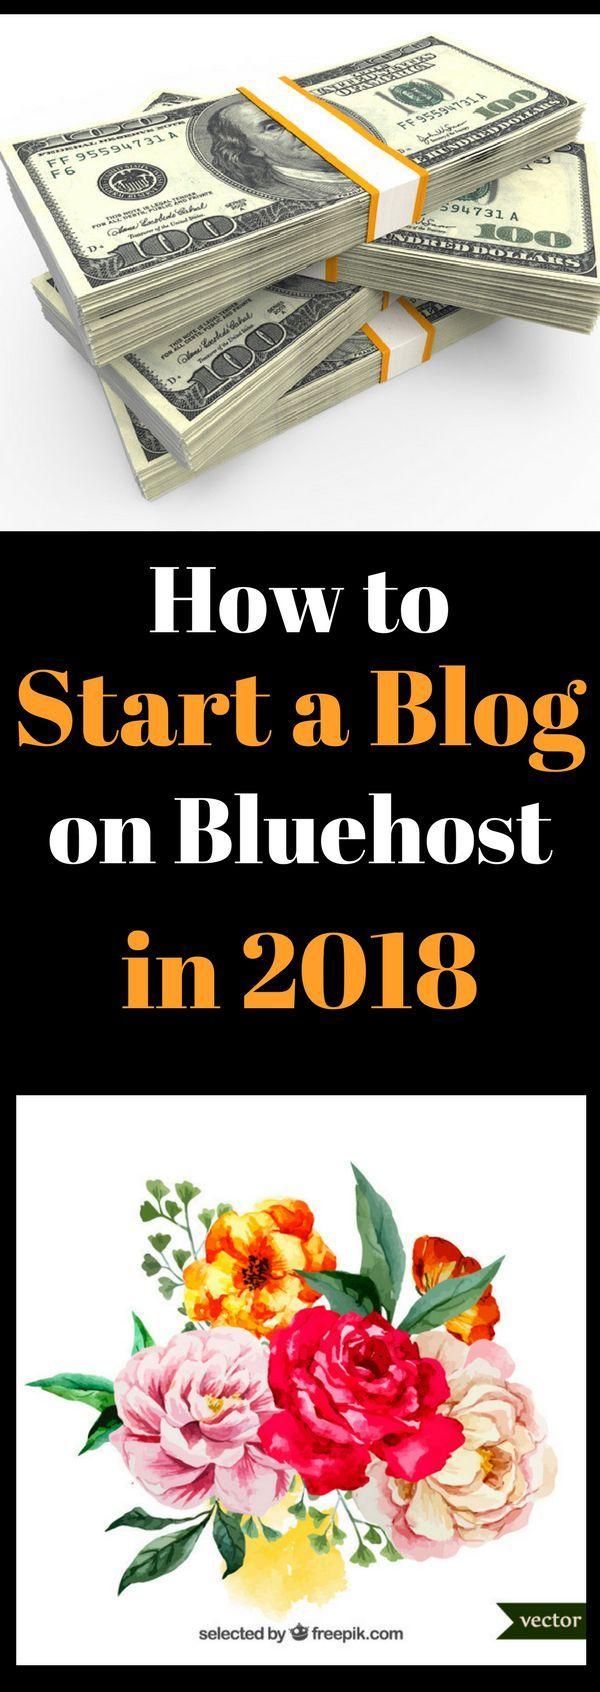 How to Start a Blog on Bluehost in 2018. How to Start a Blog on Bluehost. Use the Link Below to See How to Start a Blog on Bluehost in 2018 with Easy Step by Step Tips. https://www.howwemakemoneyonline.com/cheap-wordpress-hosting/ Whether it's Blogging for Beginners or You Need the Right Blog Set Up to Boost Blog Traffic, We Prove to You How to Start a Blog on Bluehost for Free in 2018. This is an Easy, Step by Step Guide for How to Start a Blog on Bluehost in 2018. #blogging #wordpress…